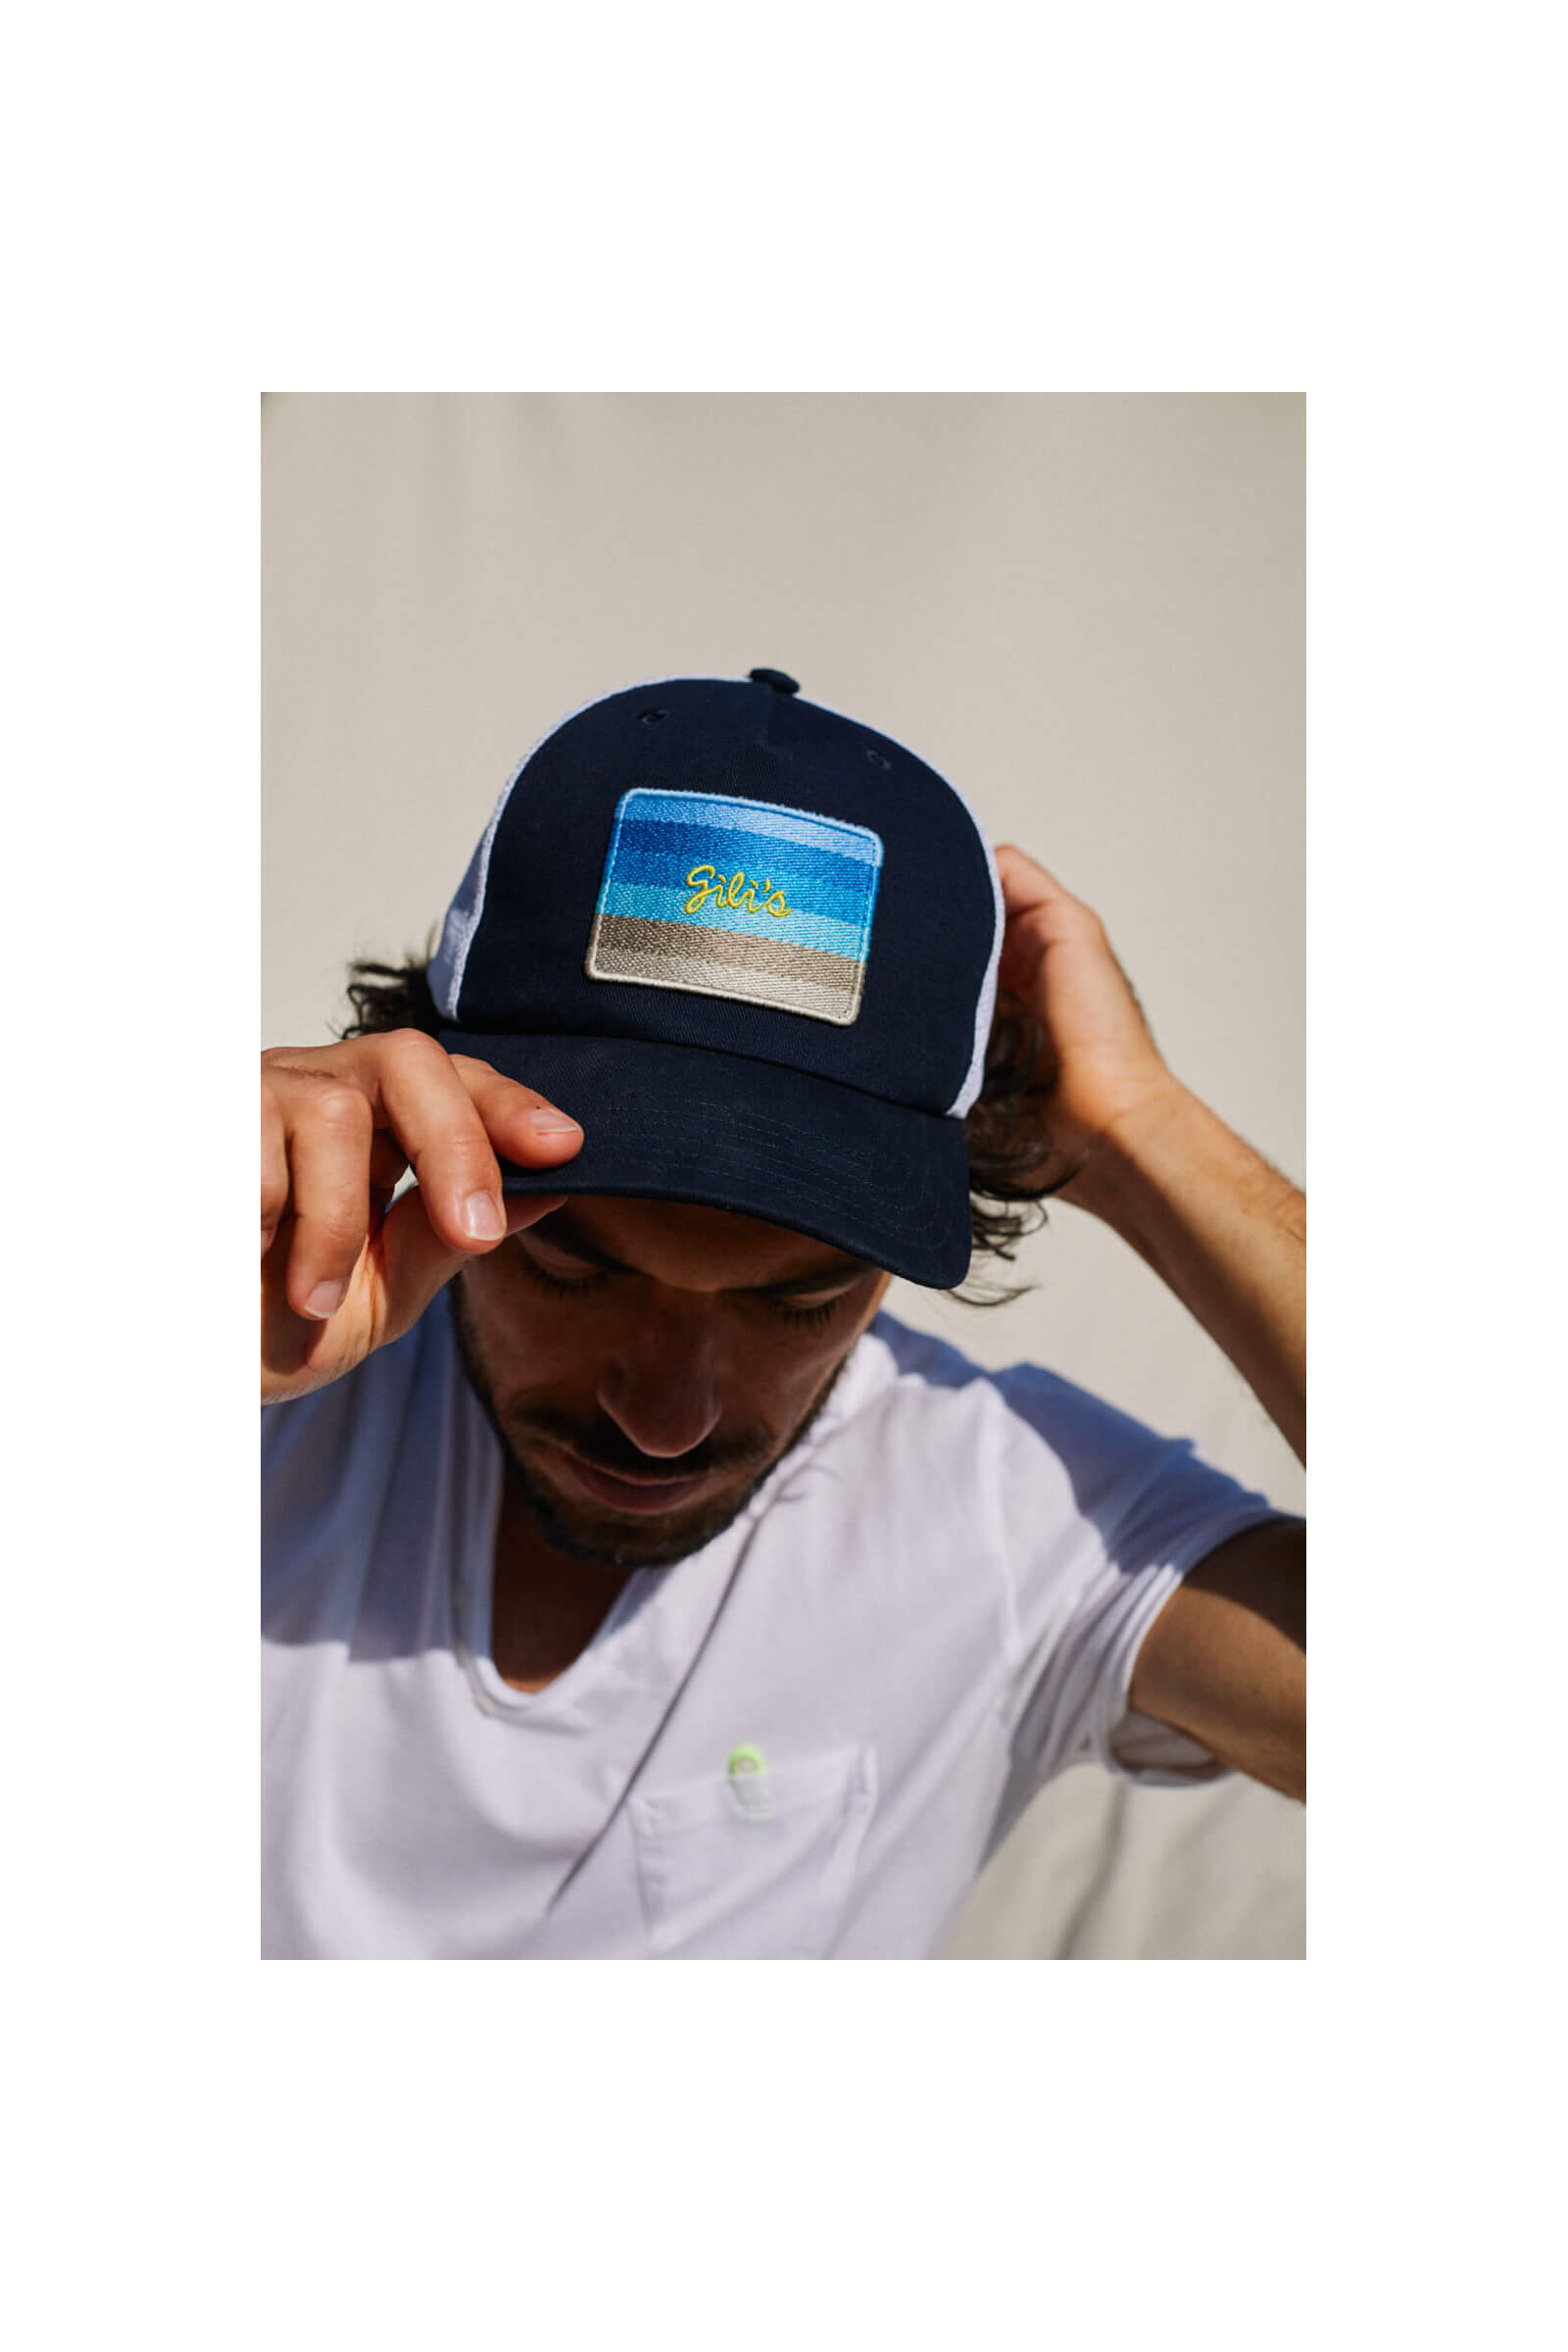 Sunset patch cap adult and kids